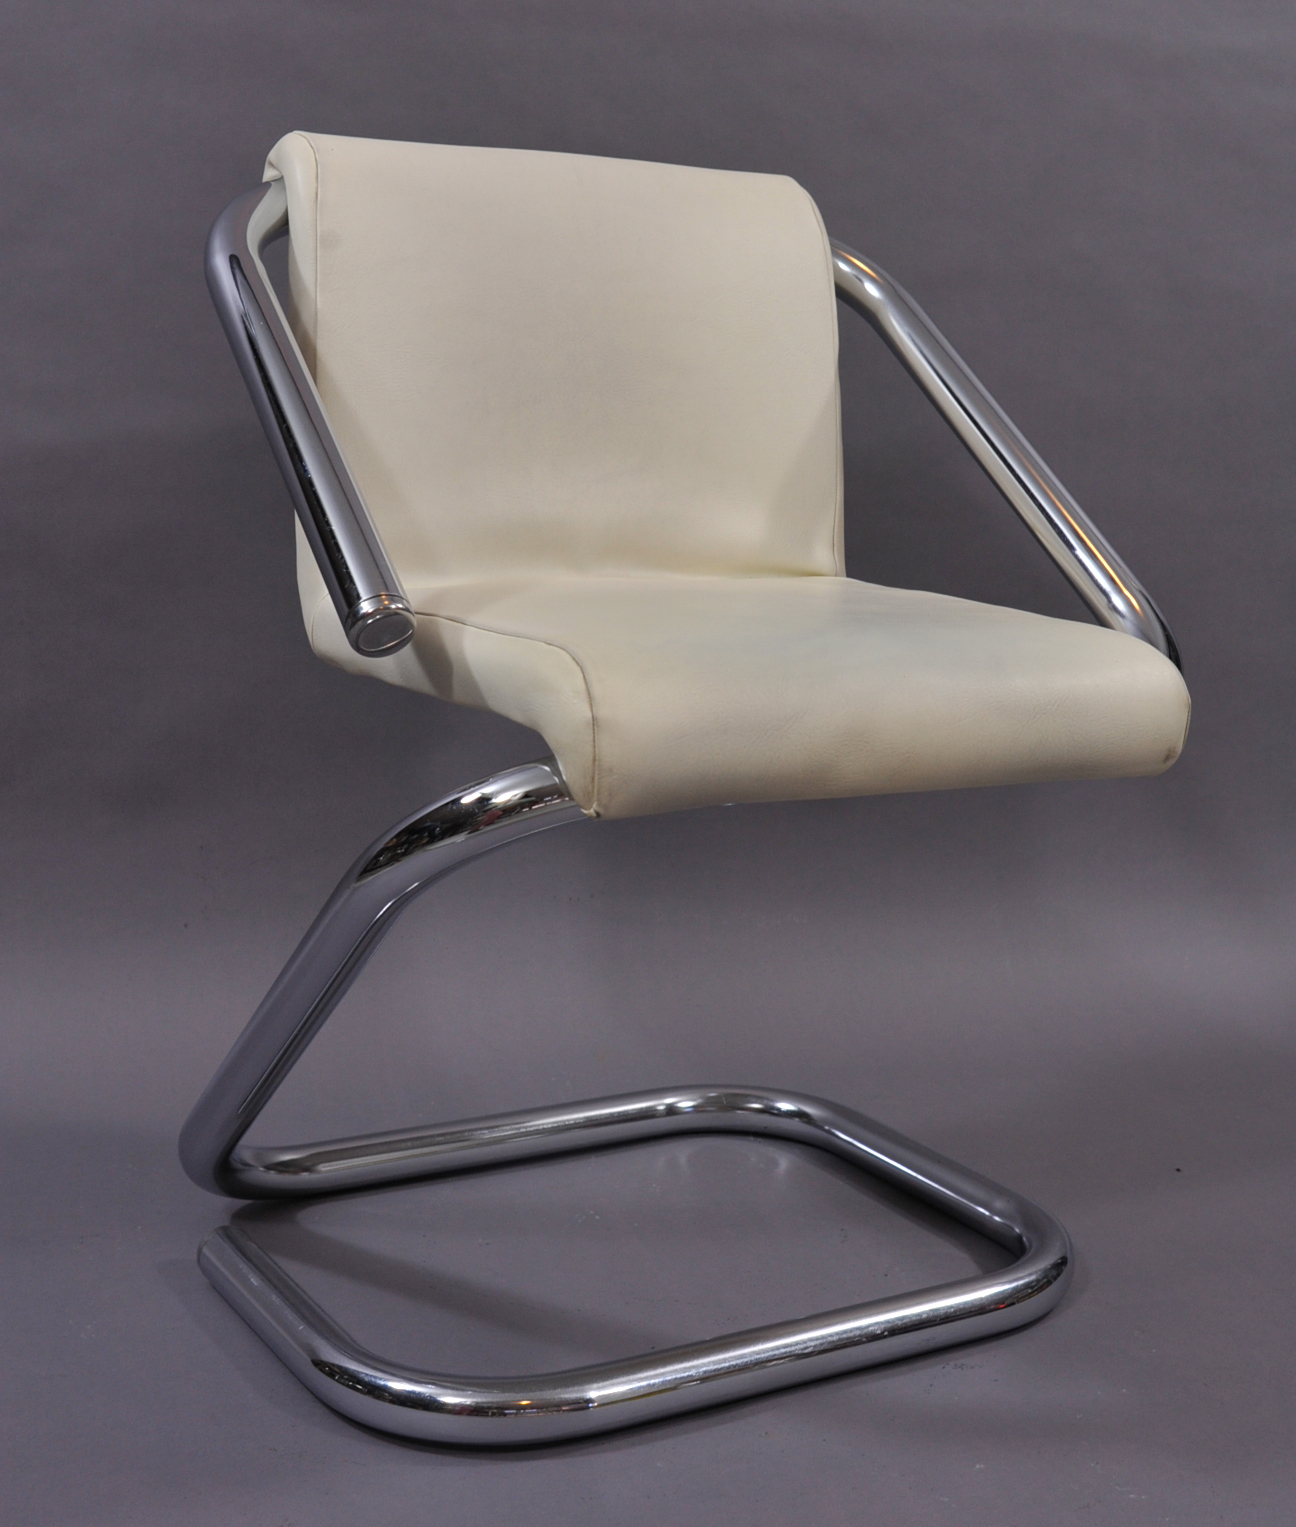 Arne Jacobsen vintage chair